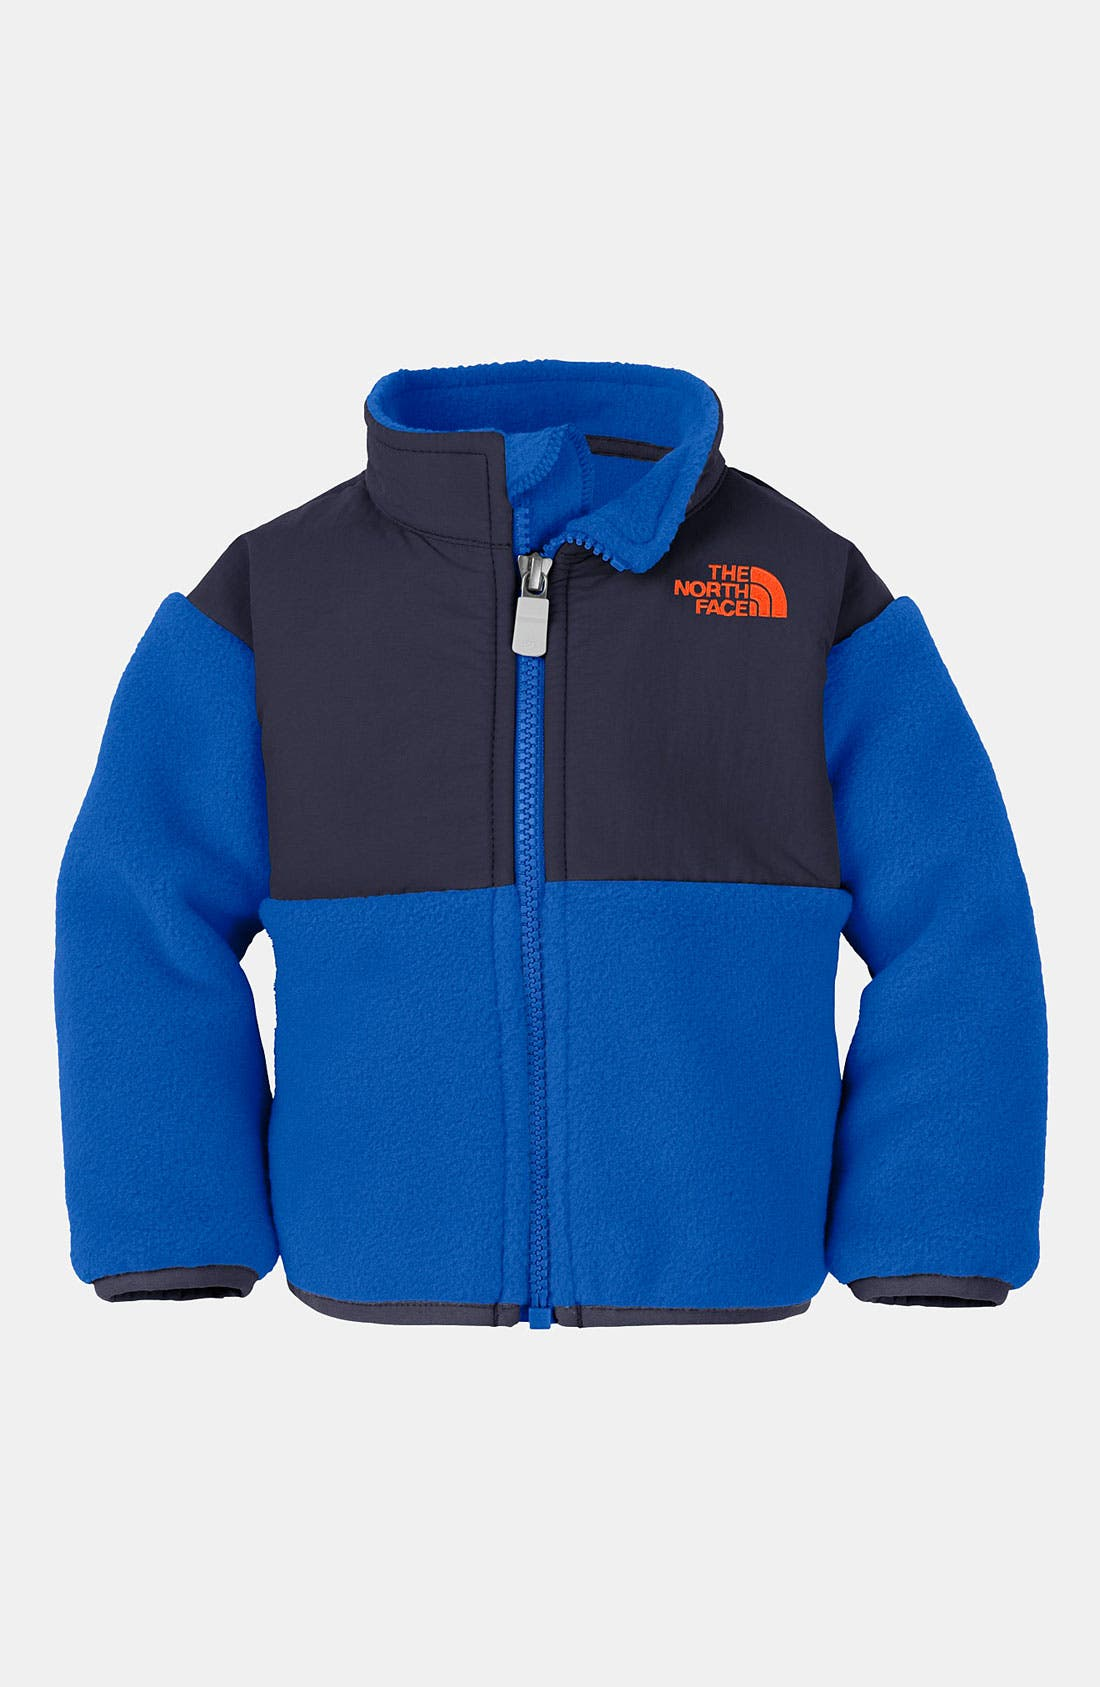 Alternate Image 1 Selected - The North Face 'Denali' Jacket (Baby)